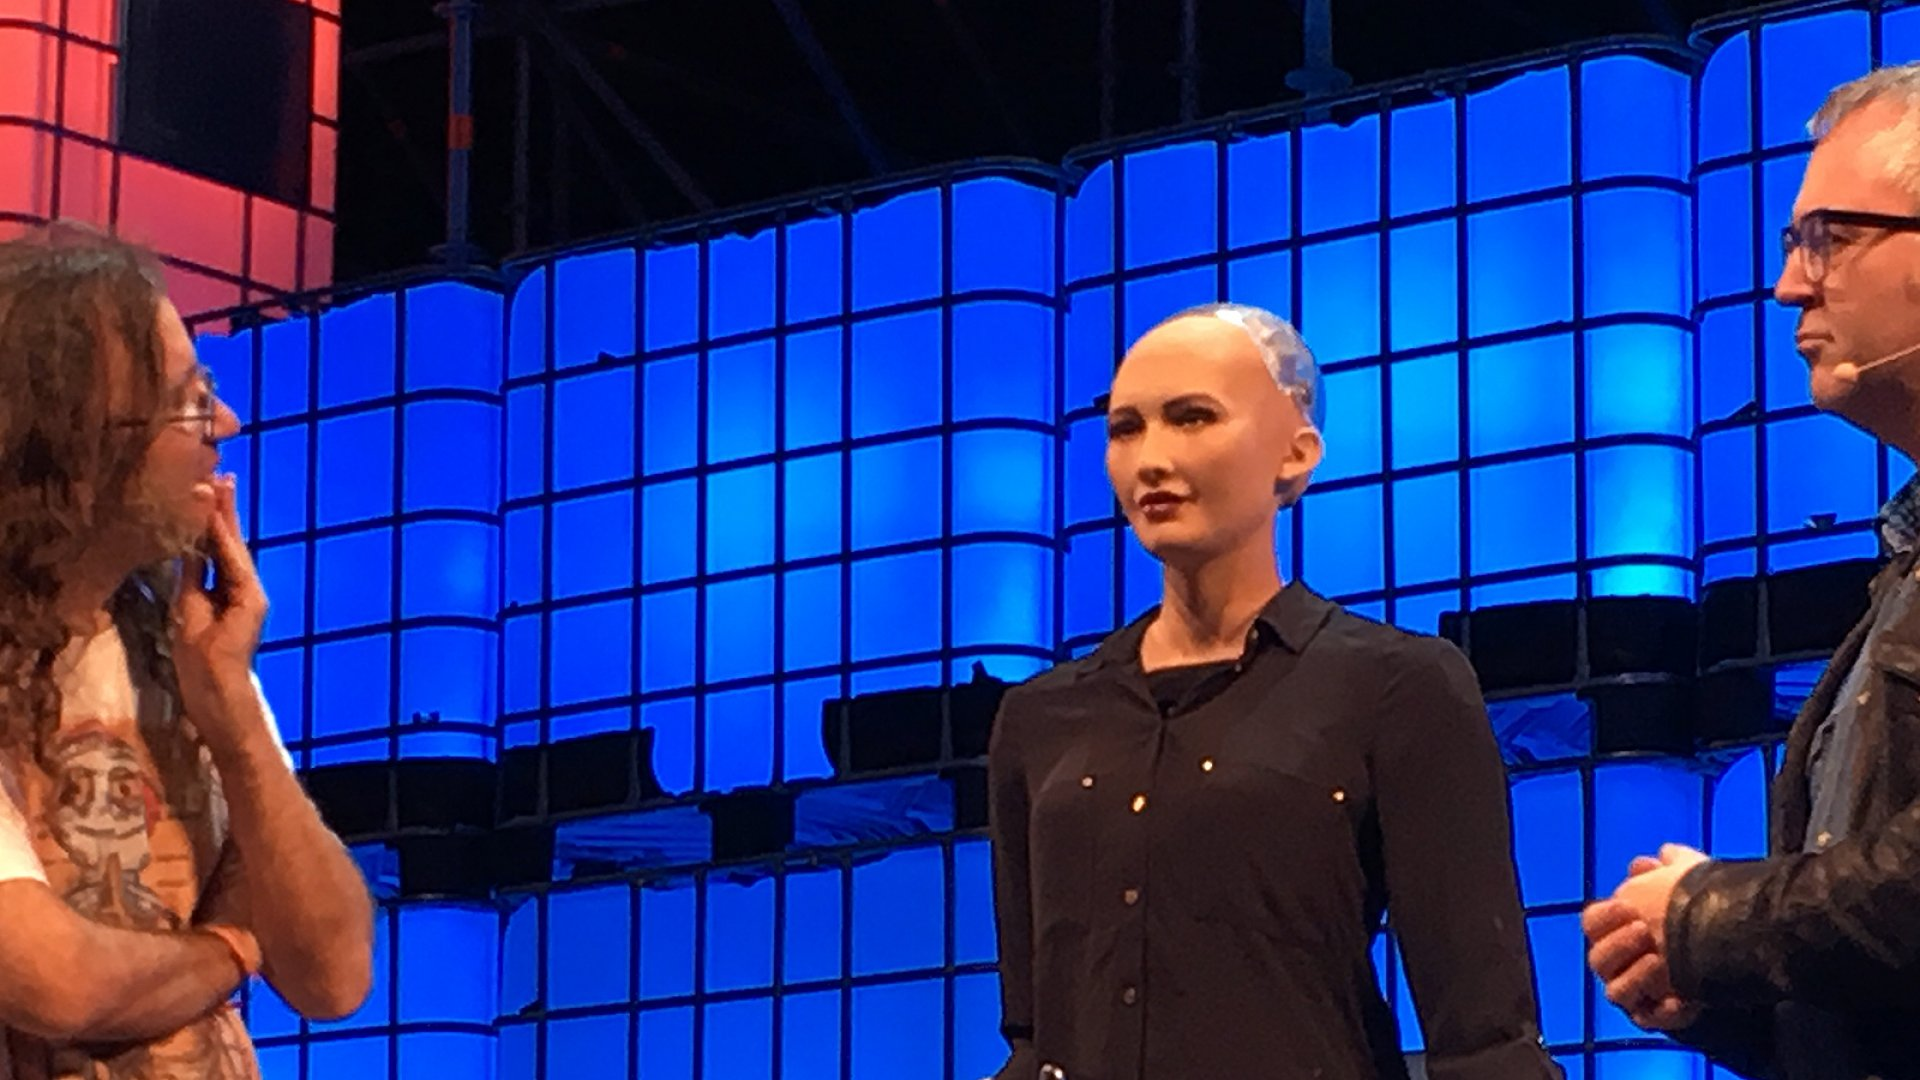 Sophia, an artificially intelligent robot, speaks with Ben Goertzel, AI researcher (left) and Mike Butcher (right), from TechCrunch, at this week's Web Summit in Lisbon.